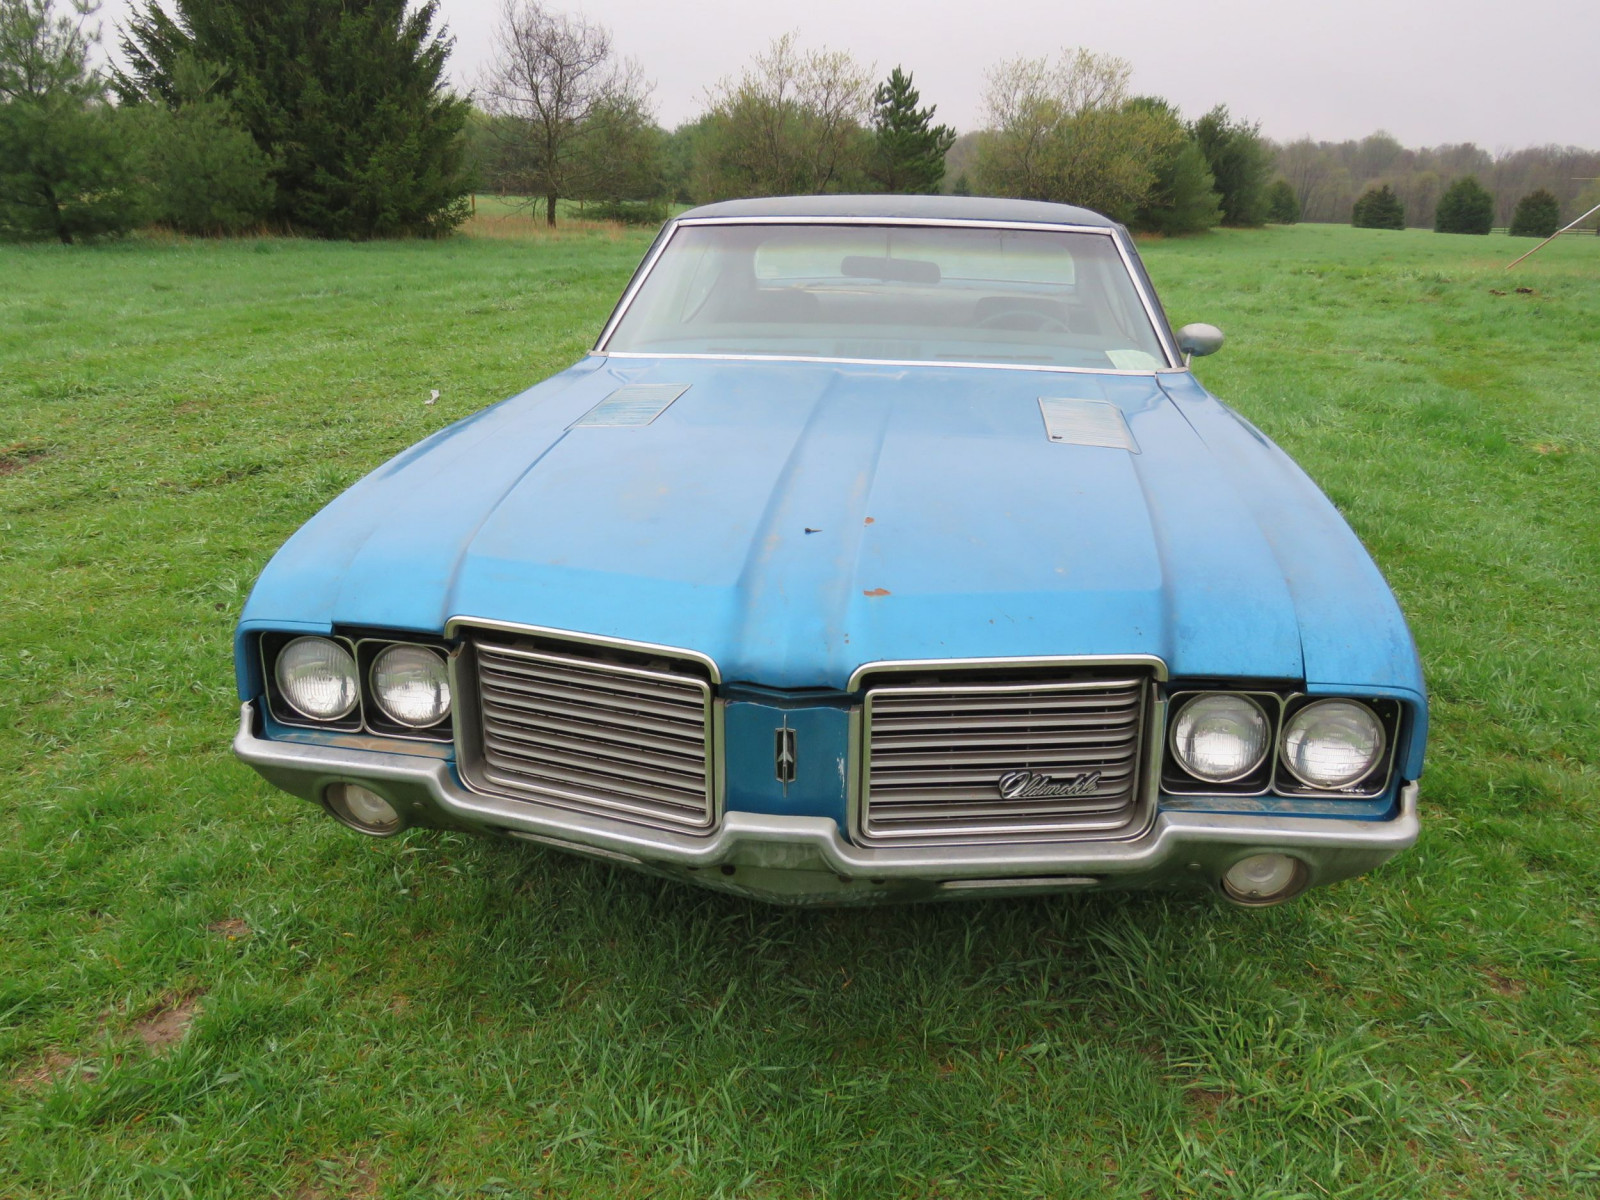 1972 Oldsmobile Cutlass C Coupe - Image 2